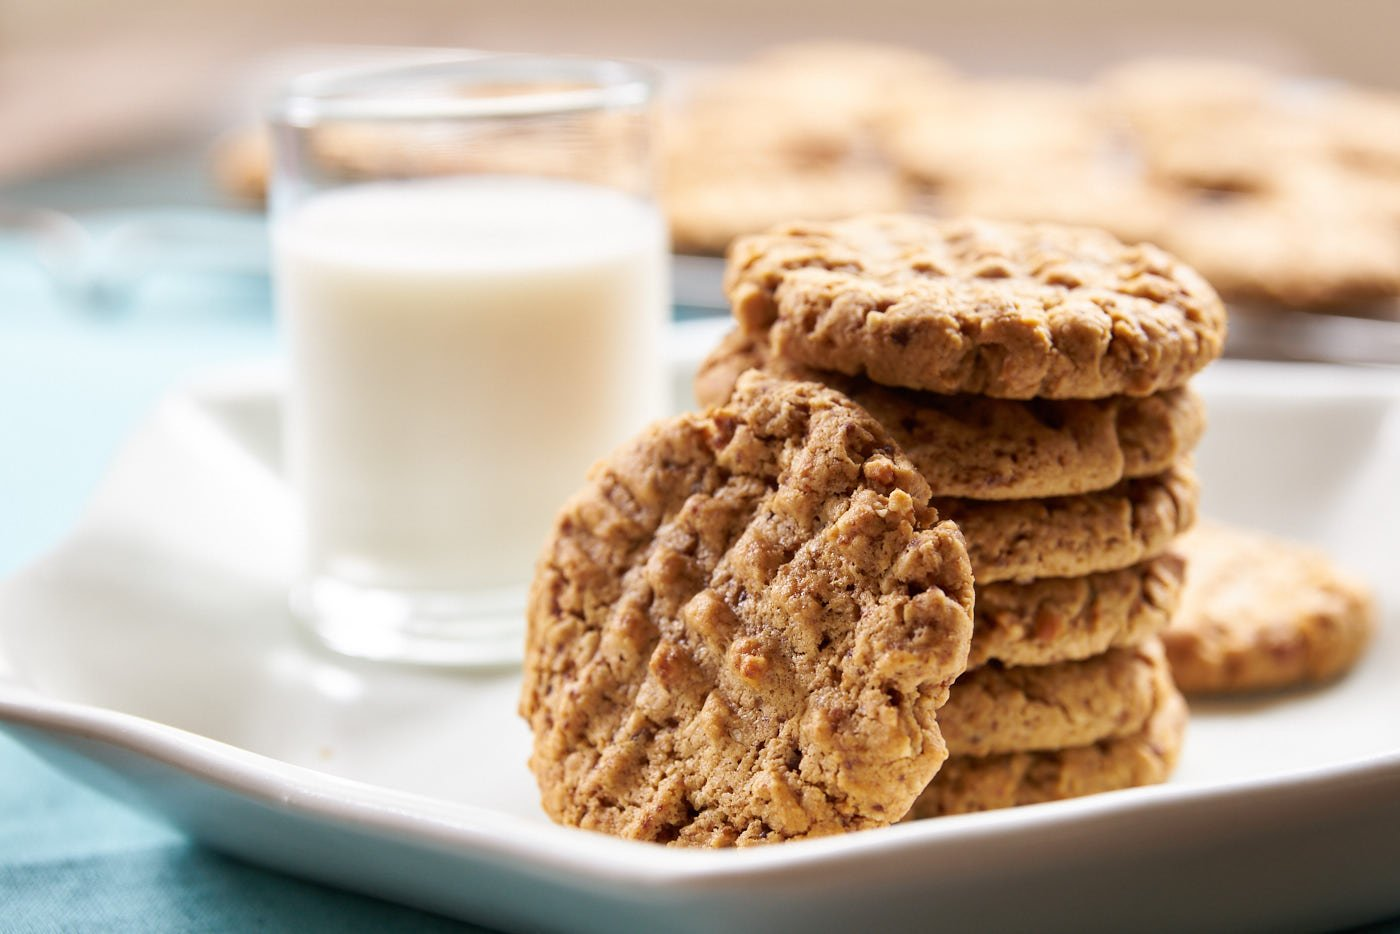 Replacing butter with peanut butter, not only makes these chewy PB cookies plant-based, it also makes them super simple to make.